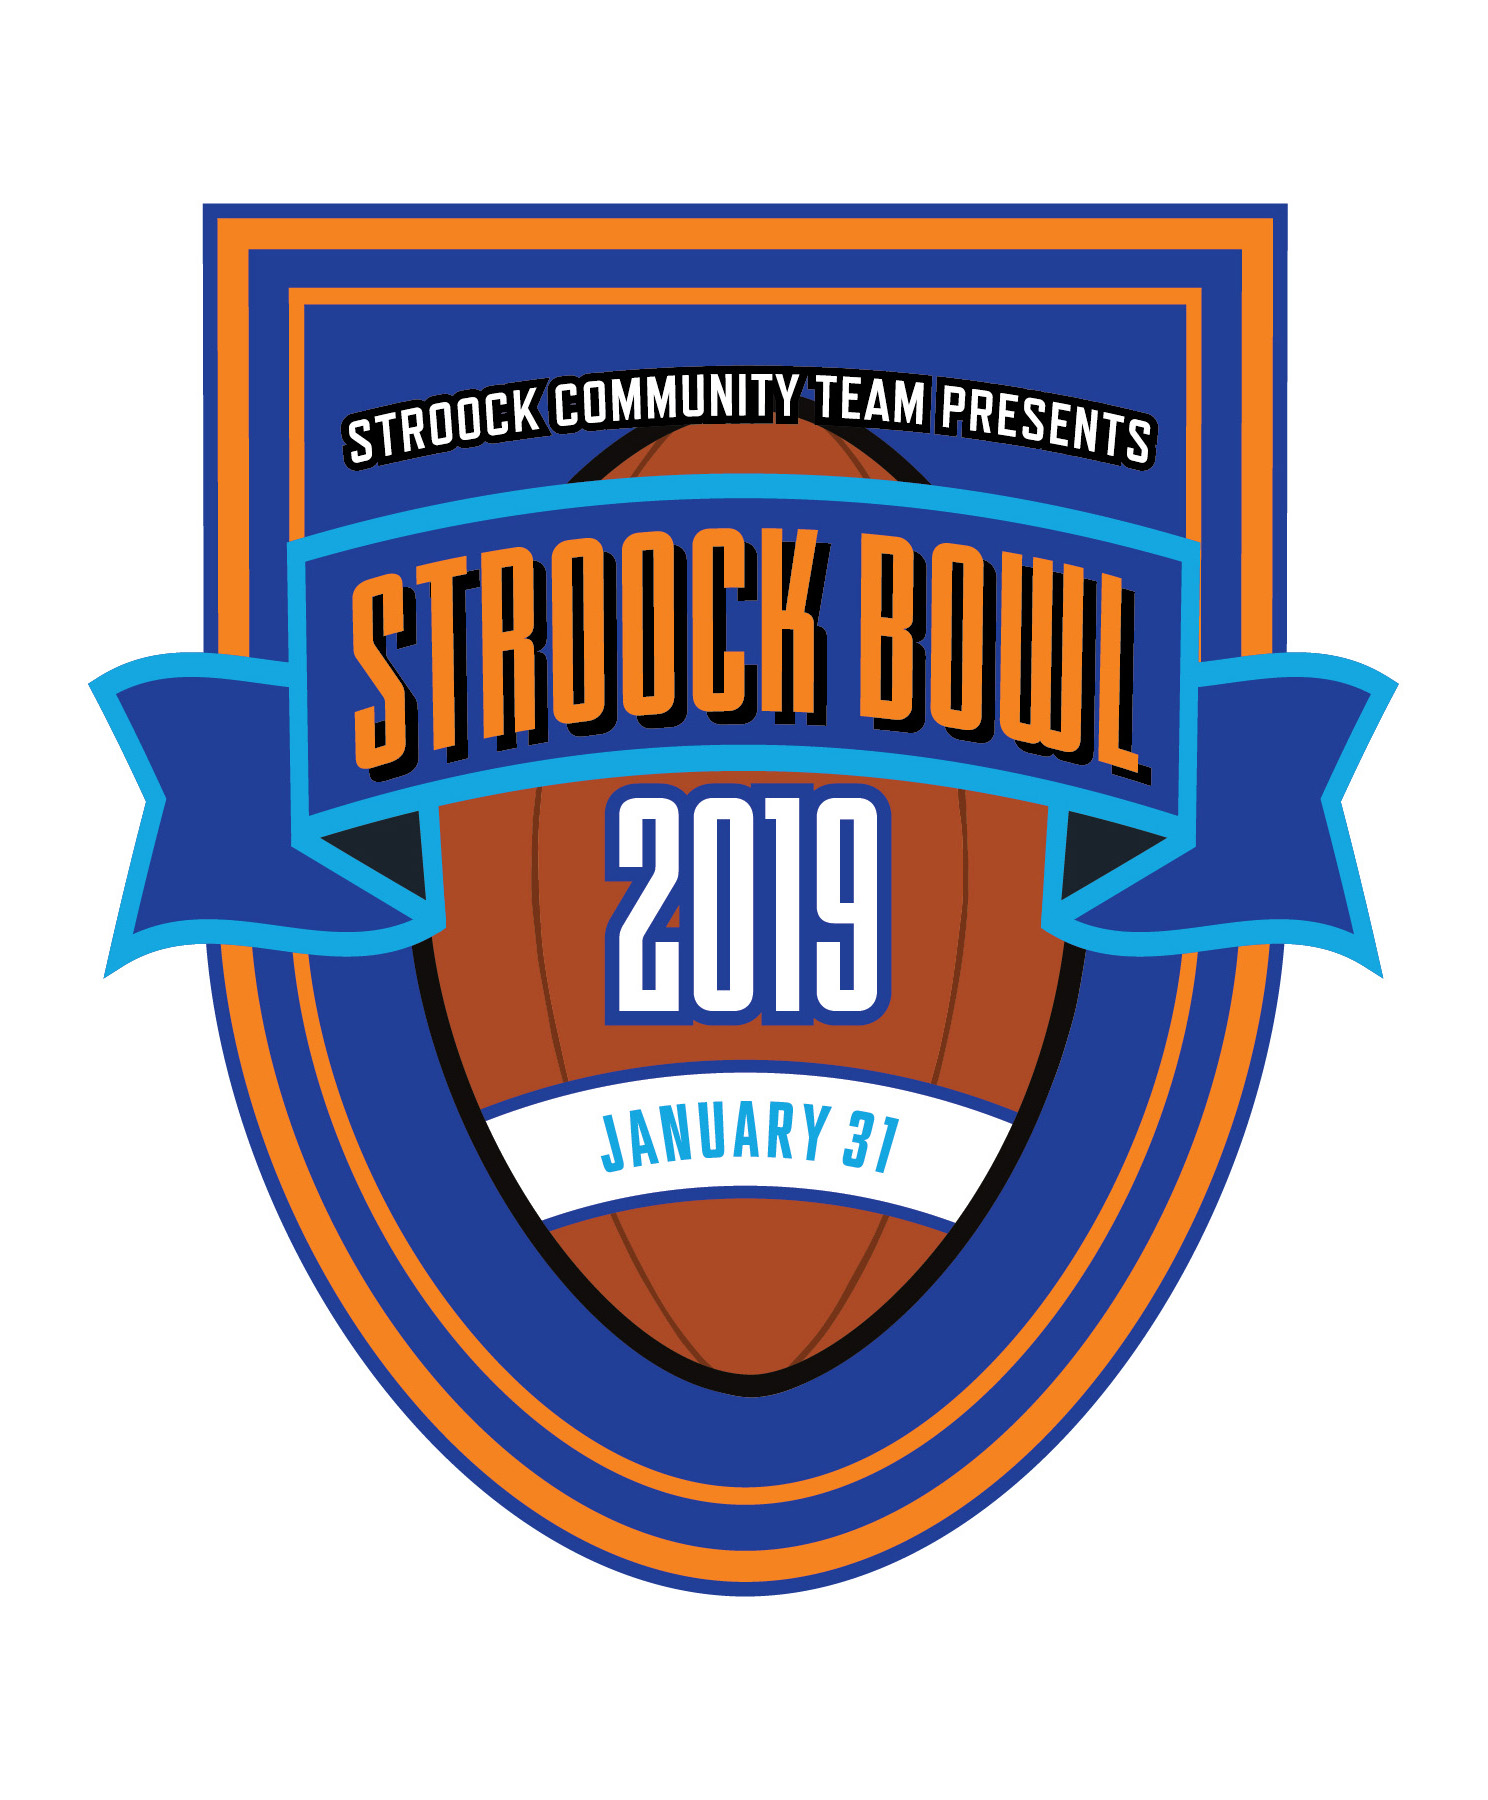 Stroock_Bowl_2019_CROPPED